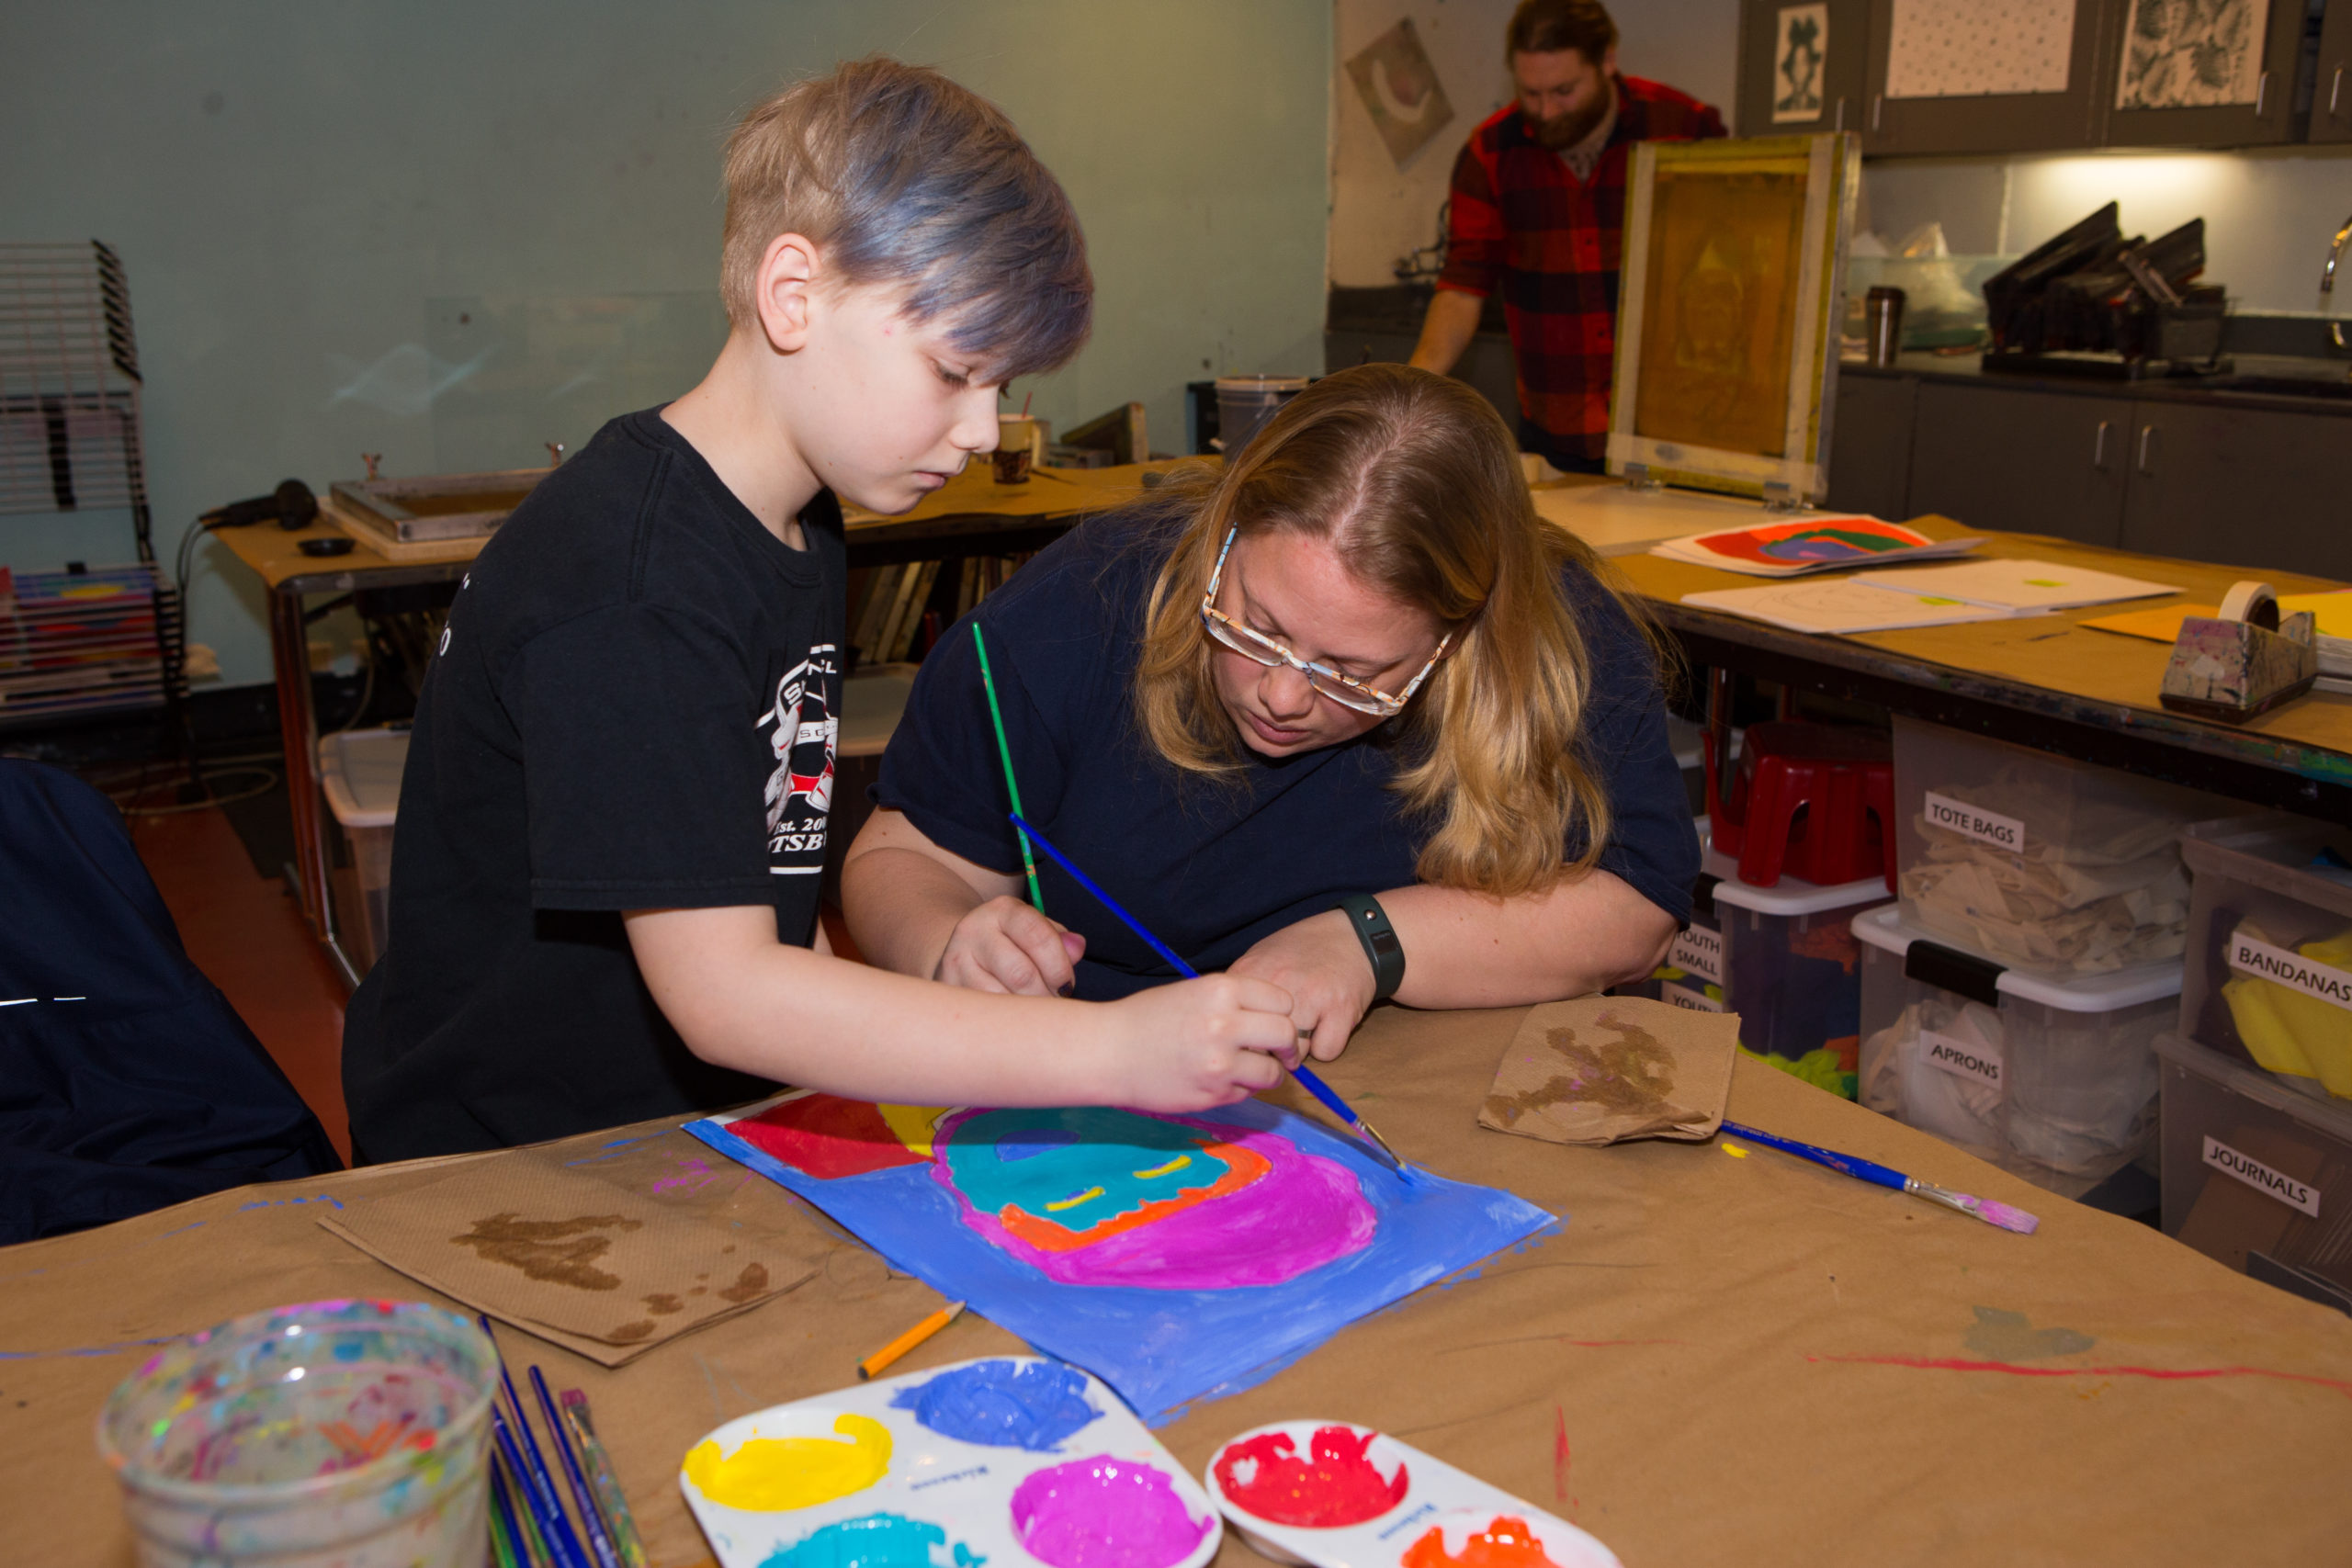 A child and an adult work on a Warhol-inspired painting in The Factory, the museum's underground studio.